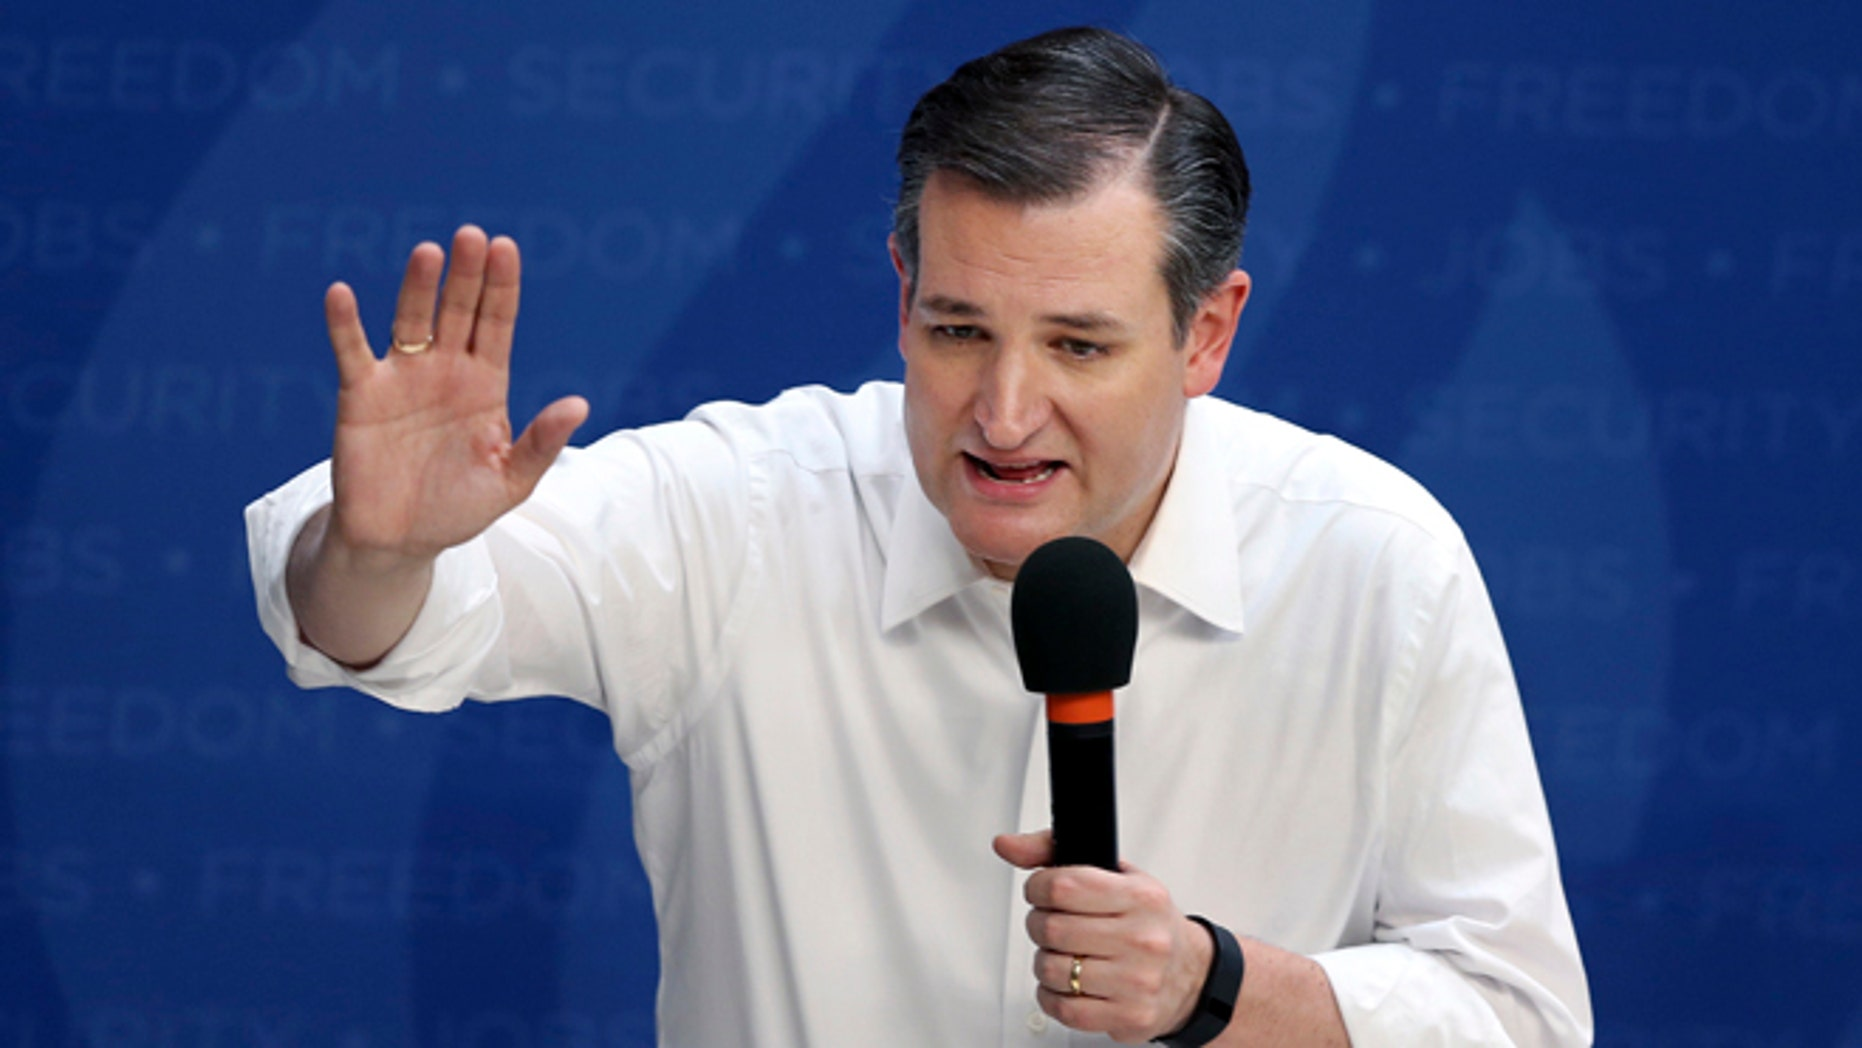 Republican presidential candidate Sen. Ted Cruz, R-Texas, speaks at a campaign rally Friday, April 15, 2016,  in Syracuse, N.Y. (AP Photo/Mel Evans)